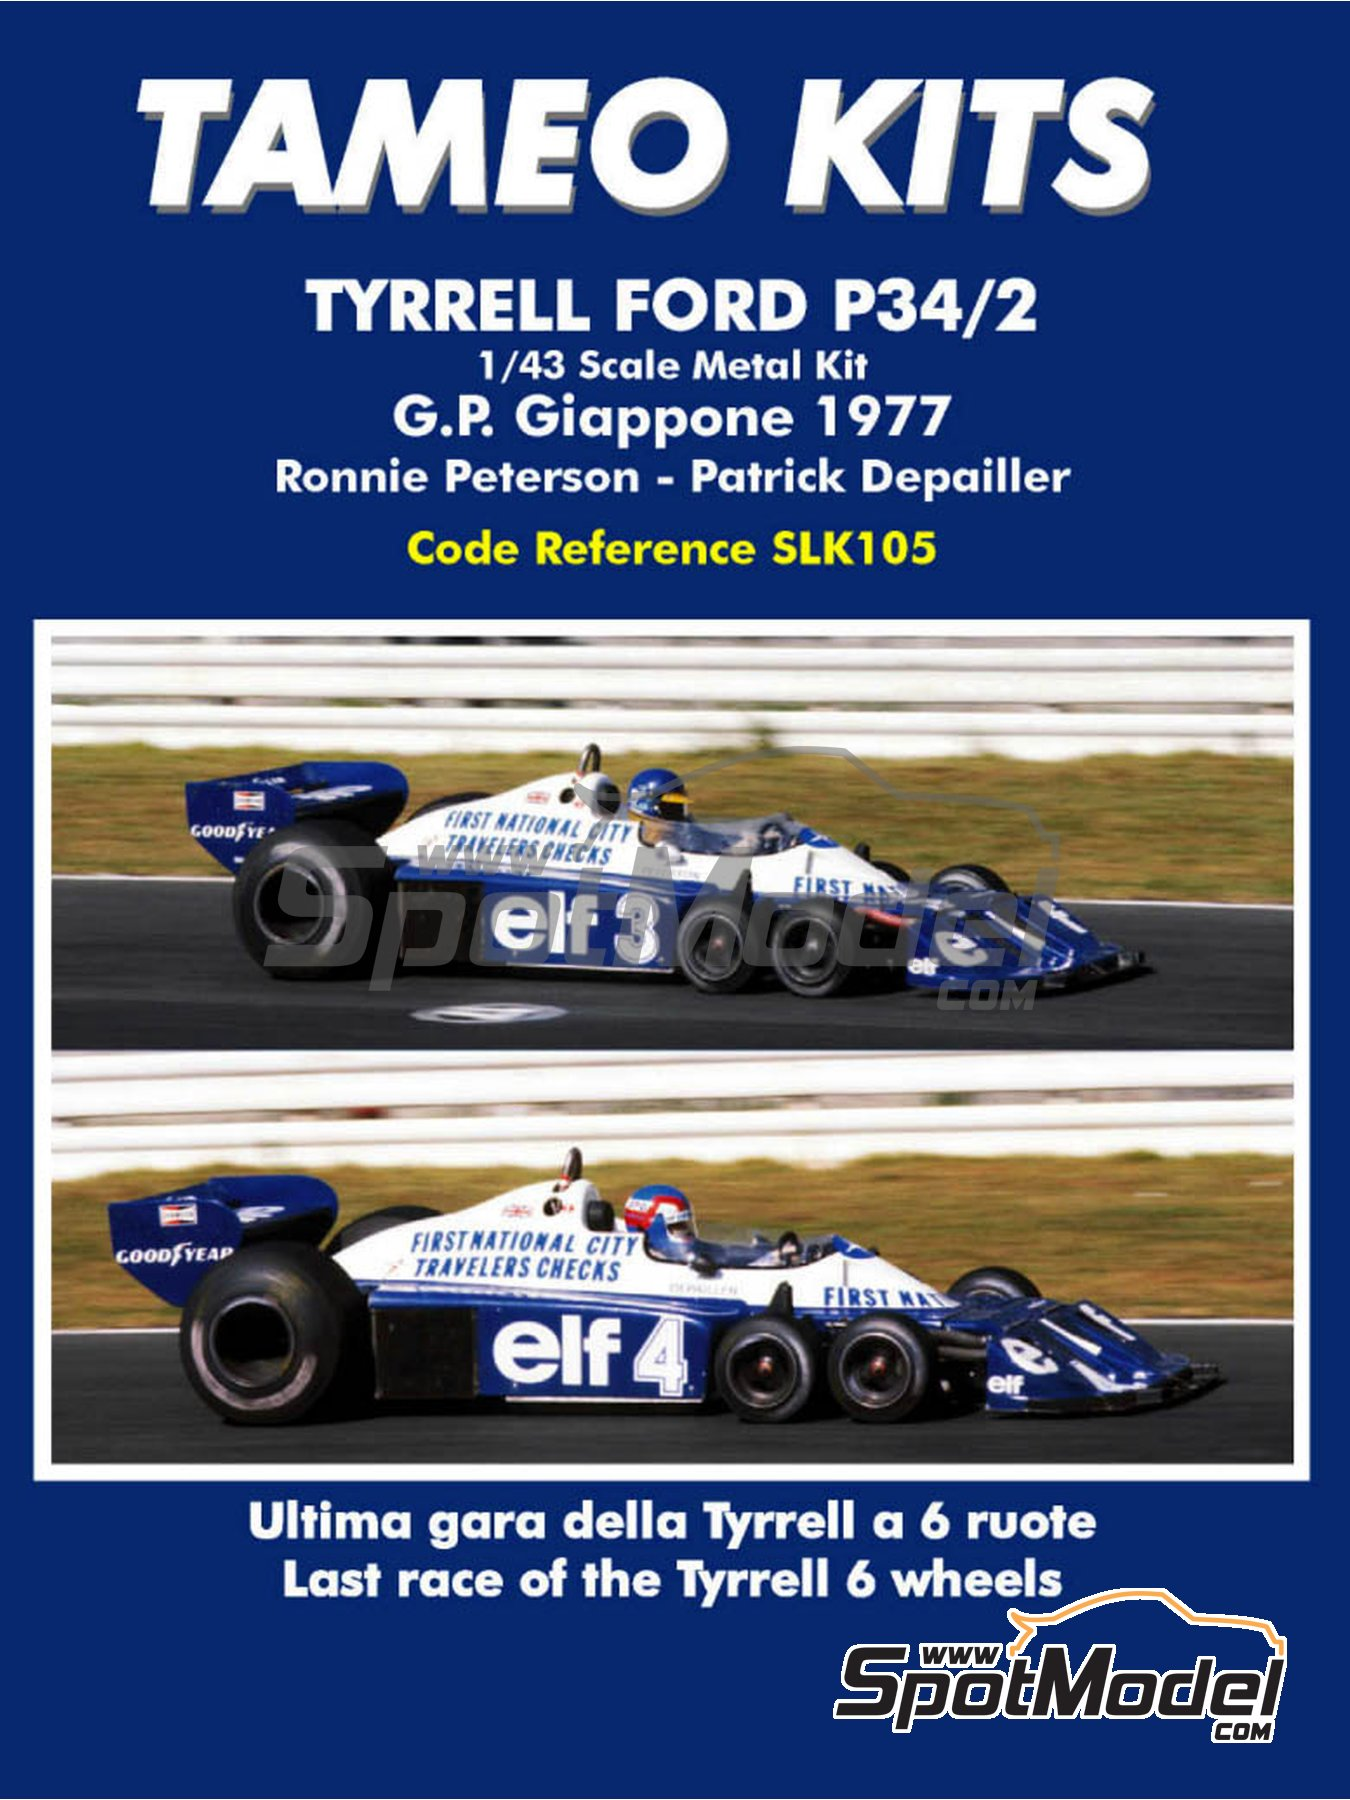 Tyrrell Ford P34/2 ELF - Japan Grand Prix 1977 | Model car kit in 1/43 scale manufactured by Tameo Kits (ref. SLK105) image